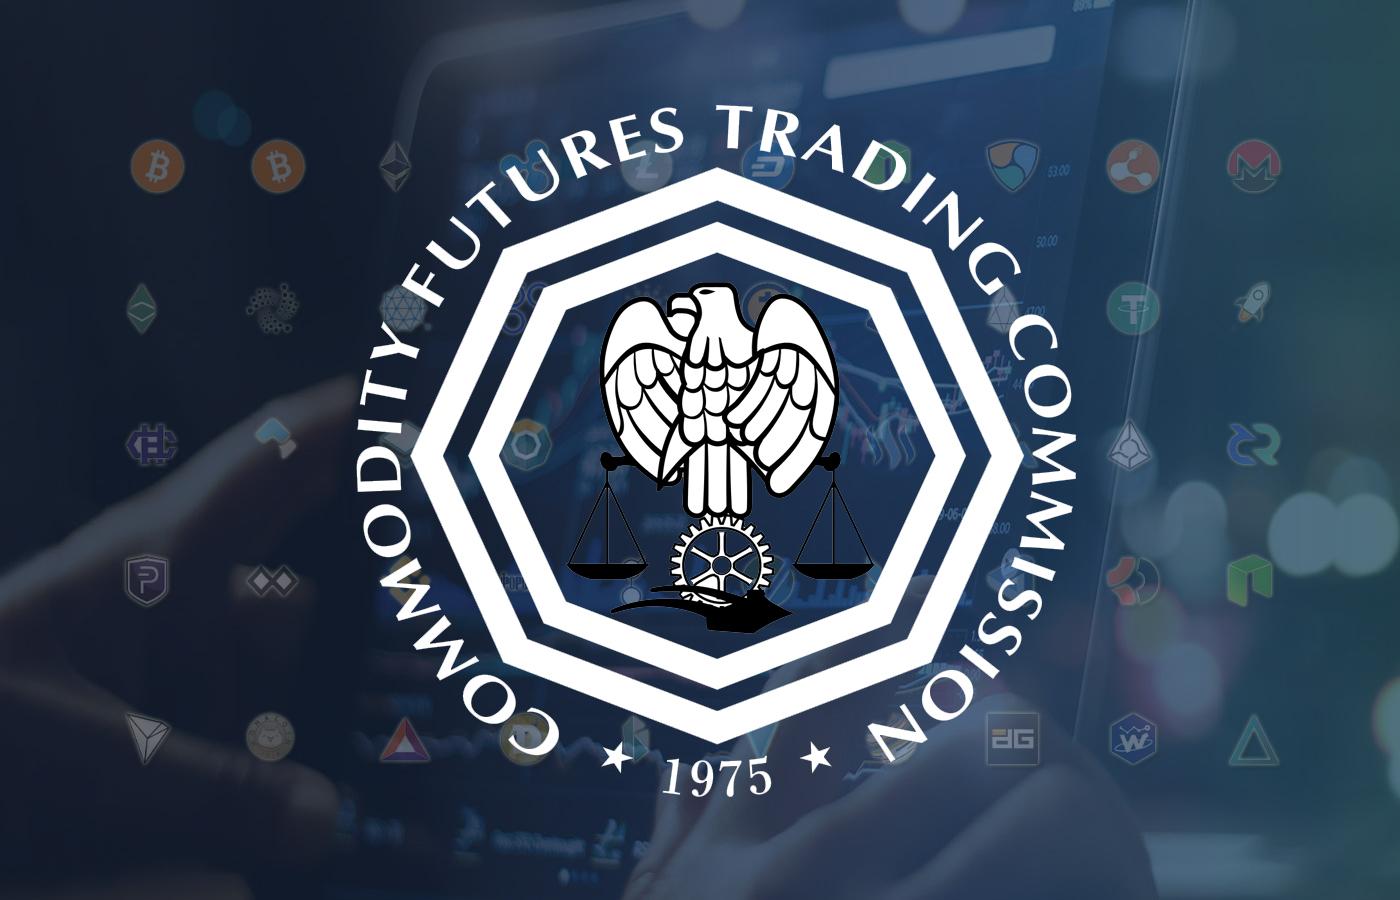 US CFTC Chairman Prefers Principles Over Rules For Crypto